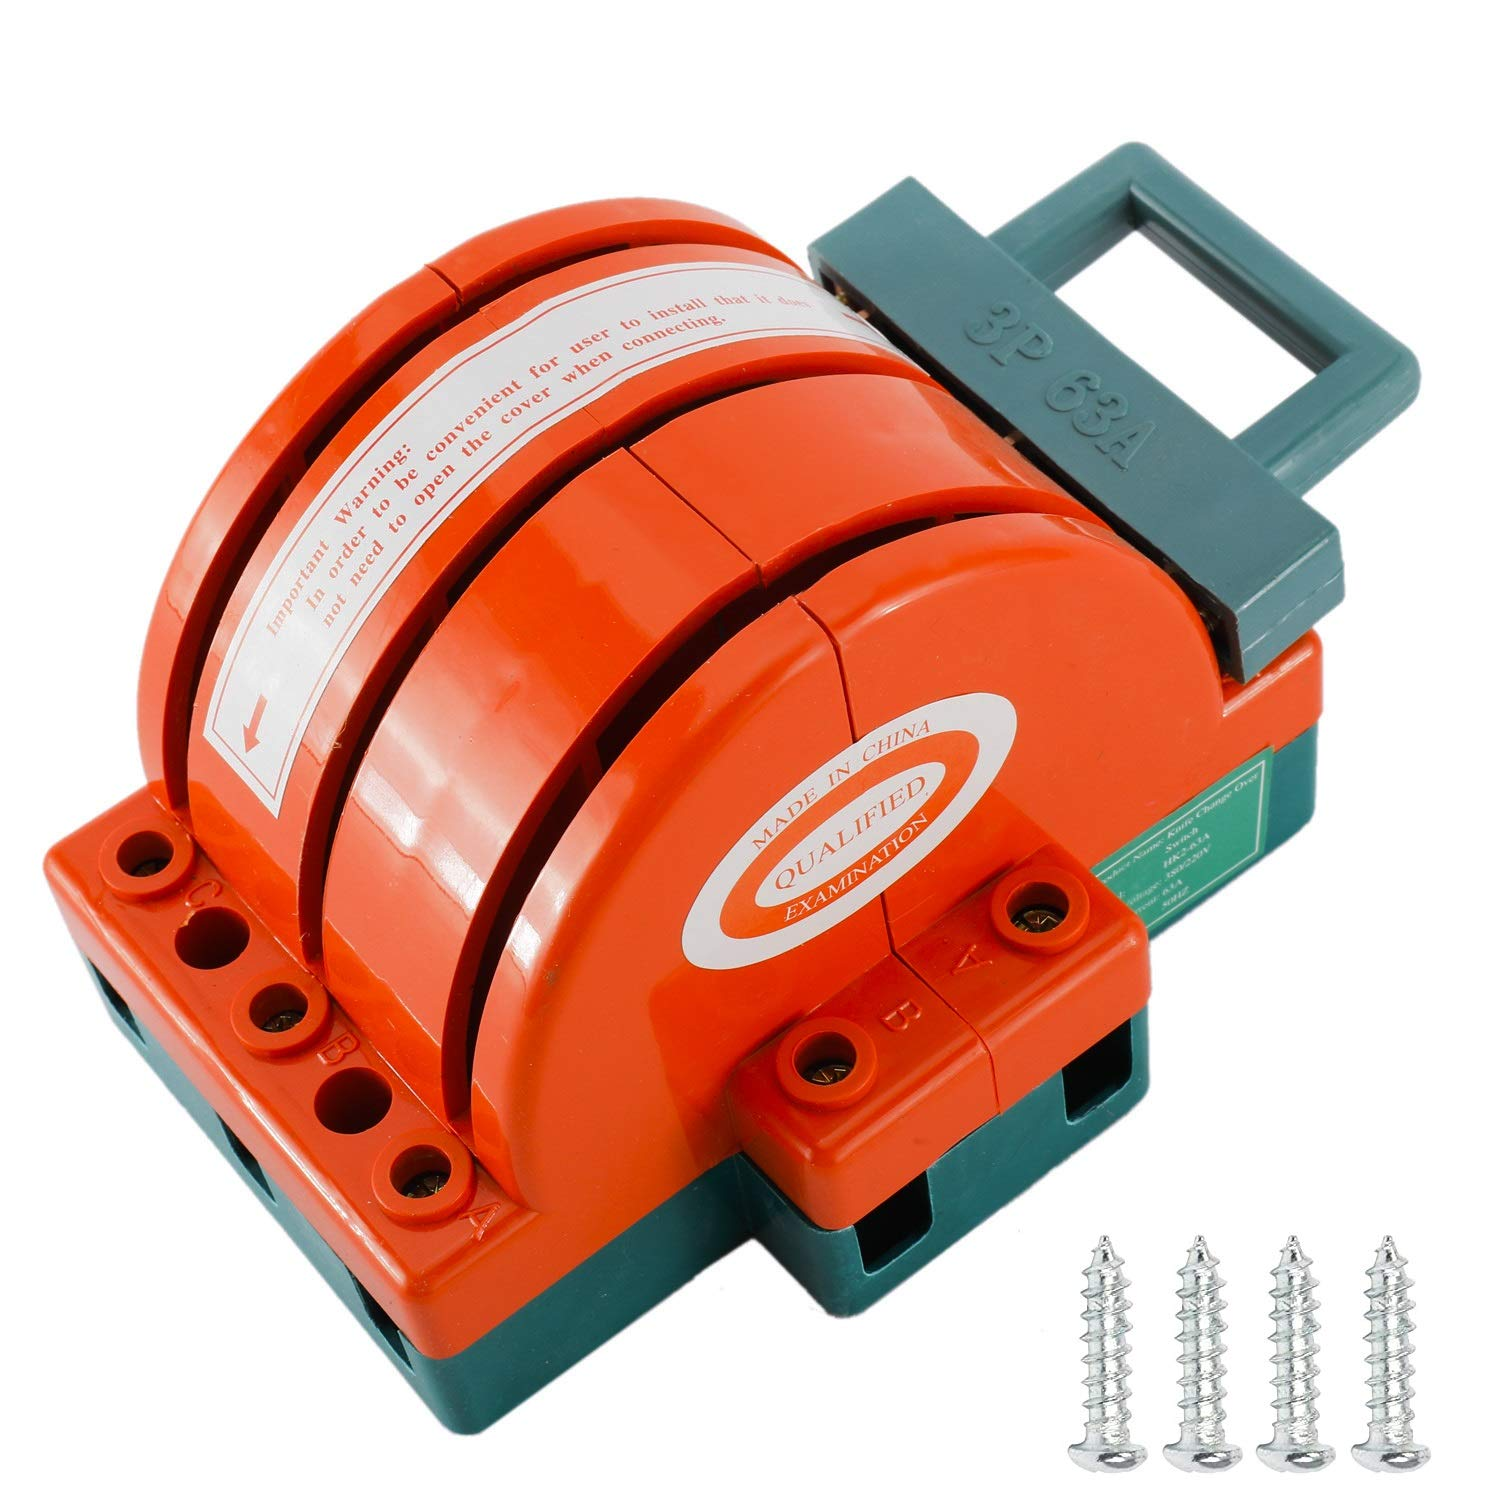 Knife Switch Dual Power Copper Power Disconnector Switch Semicircular Switch, Kaifa (3P 63A)